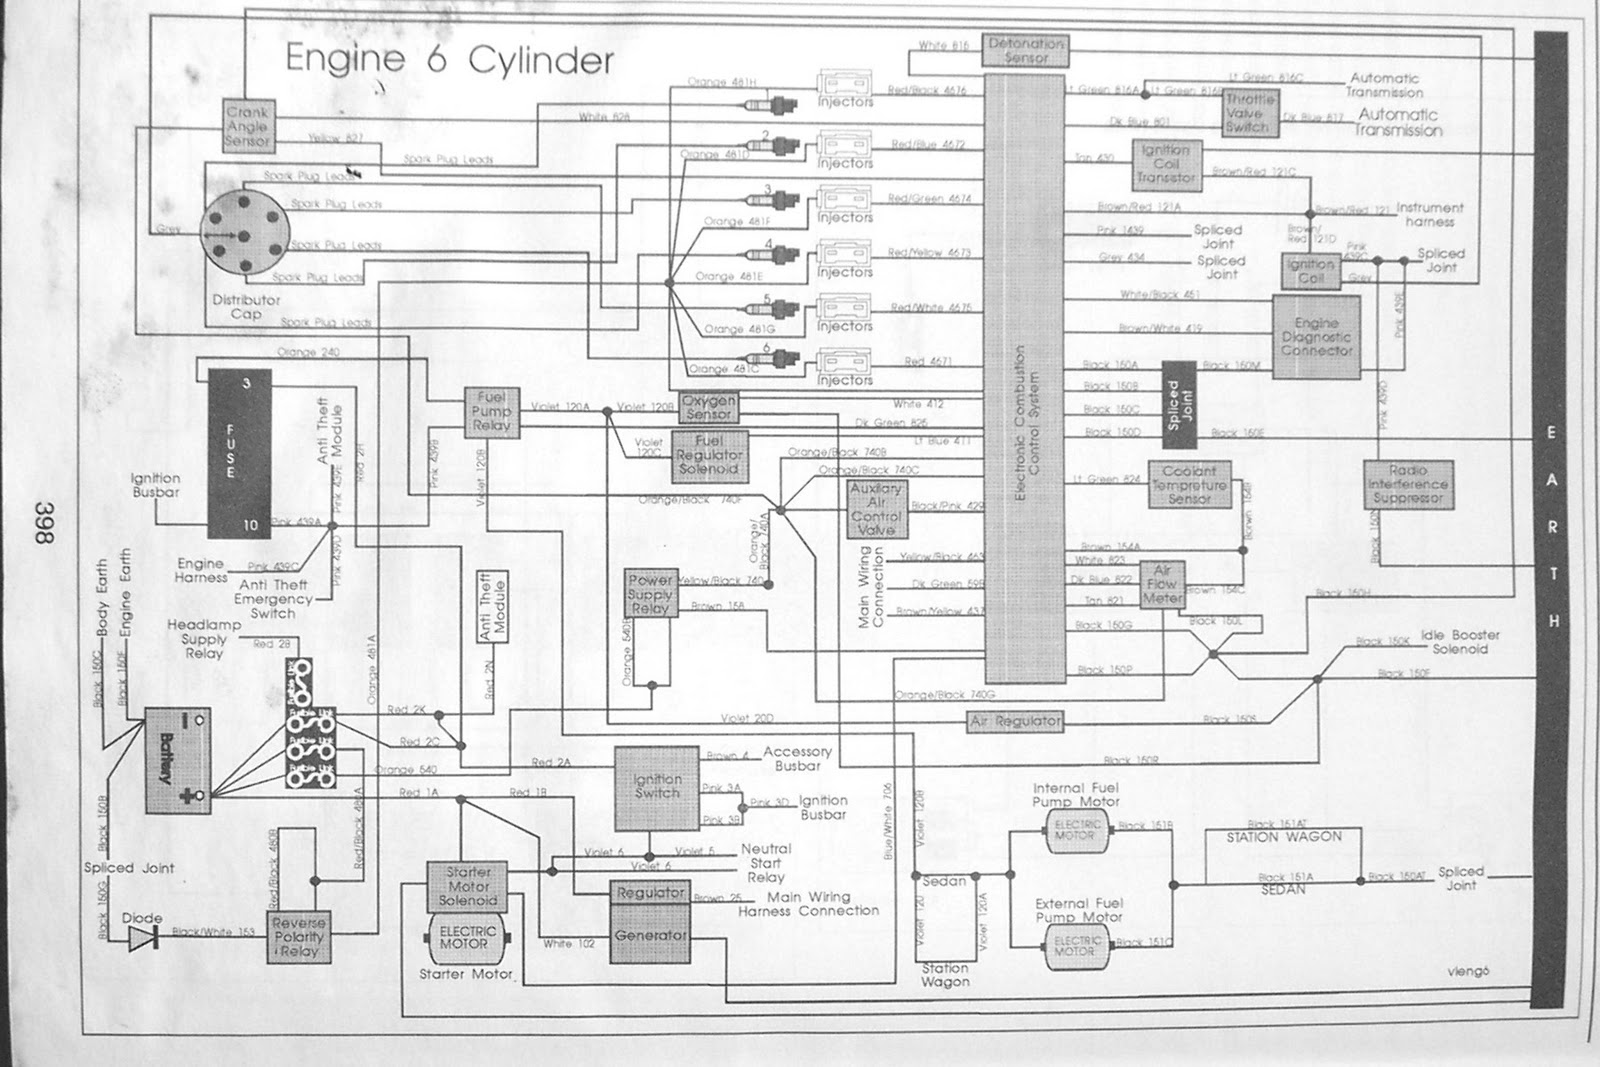 Vn Alternator Wiring Diagram Library Rb30 Diagrams 280zx Project 14b Commodore Engine